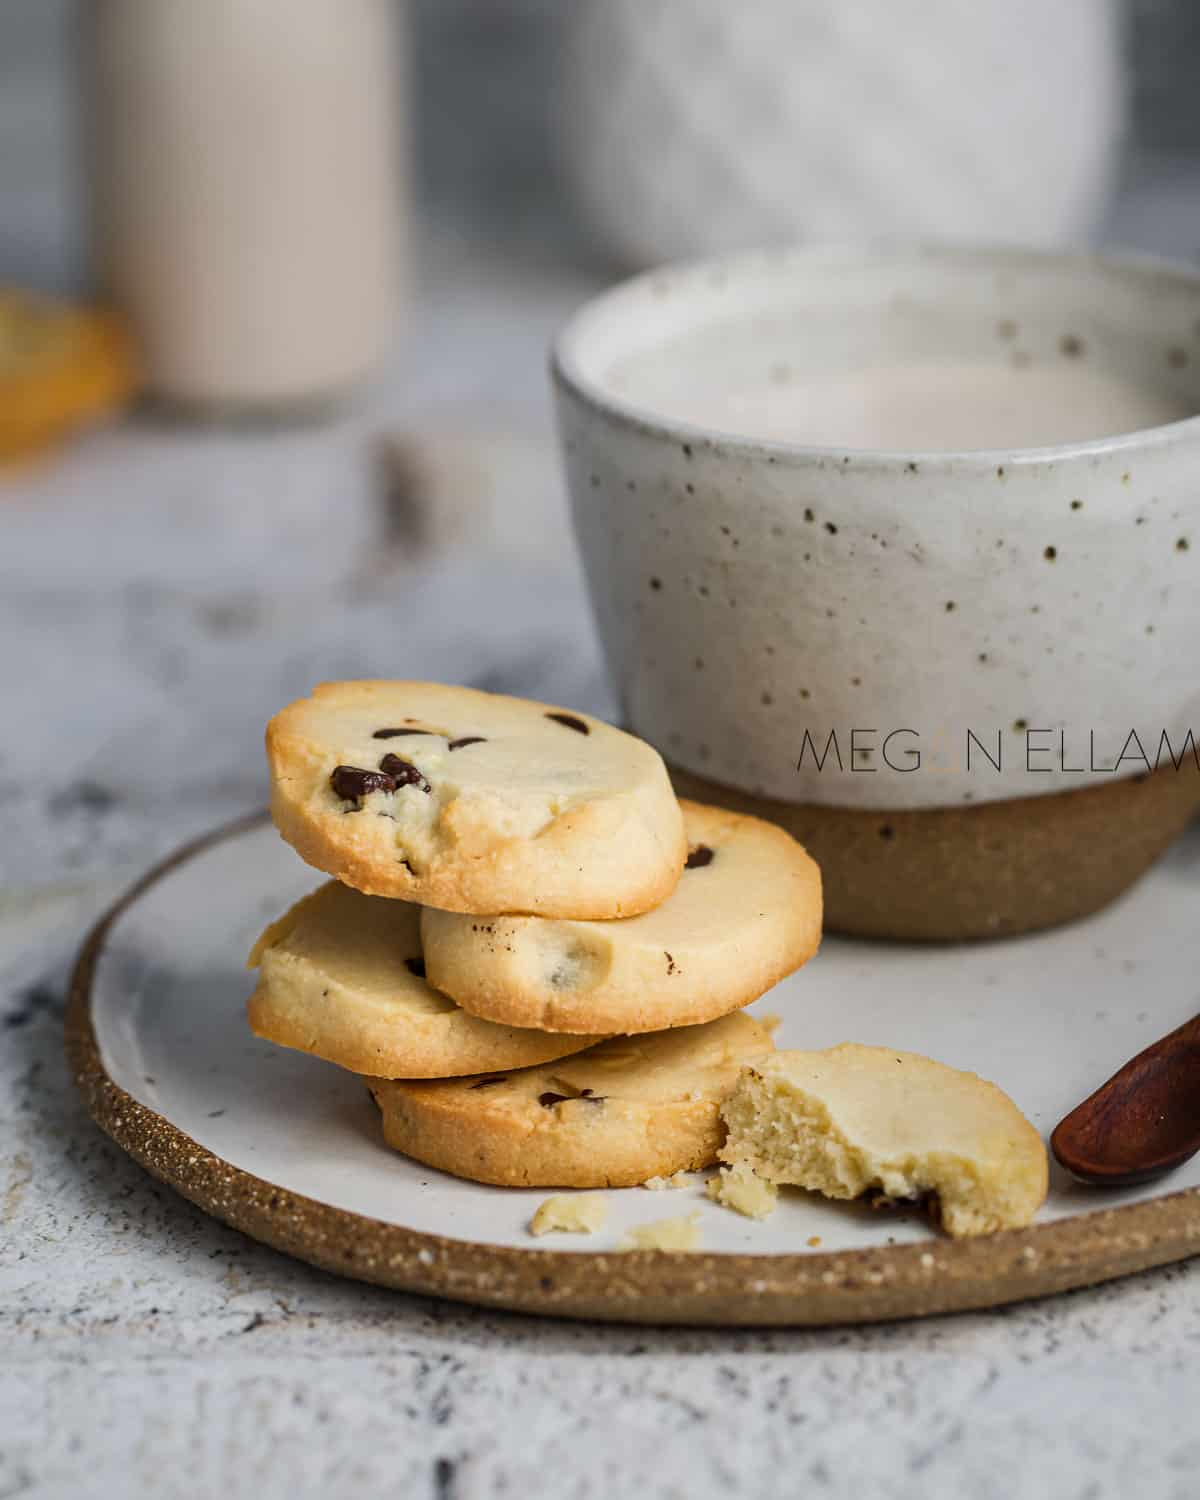 Almond flour cookies on a plate with a cup of tea.